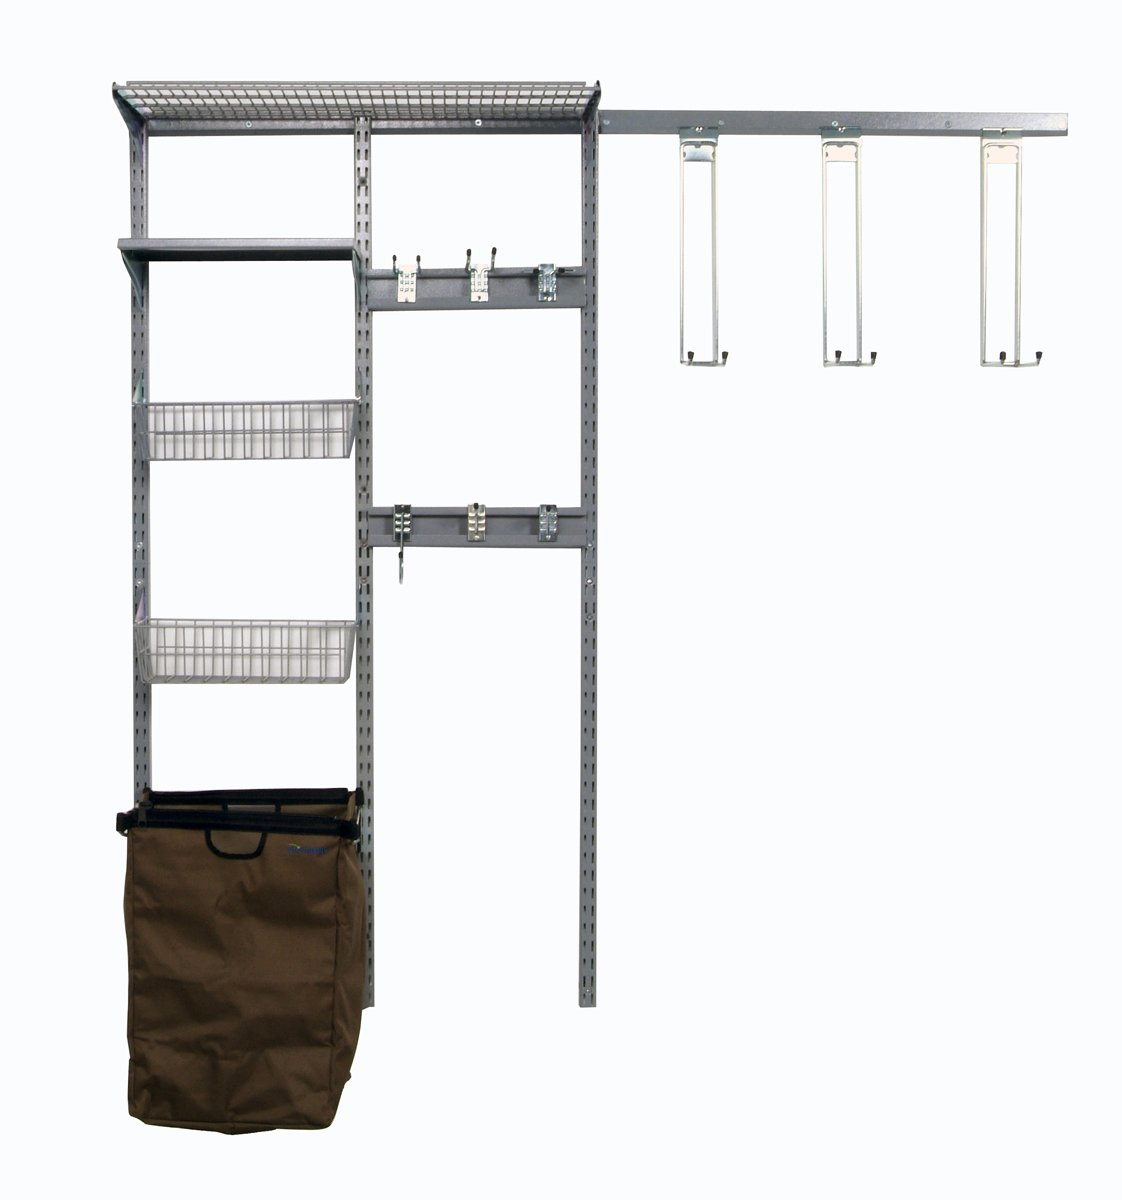 Triton Products 1760 Storability Wall Mount Storage System 66-Inch L by 63-Inch H with Heavy Duty Hanging Hooks, Shop/Rag Bag, Wire Shelf, 2 Wire Baskets, Steel Shelf and Hardware